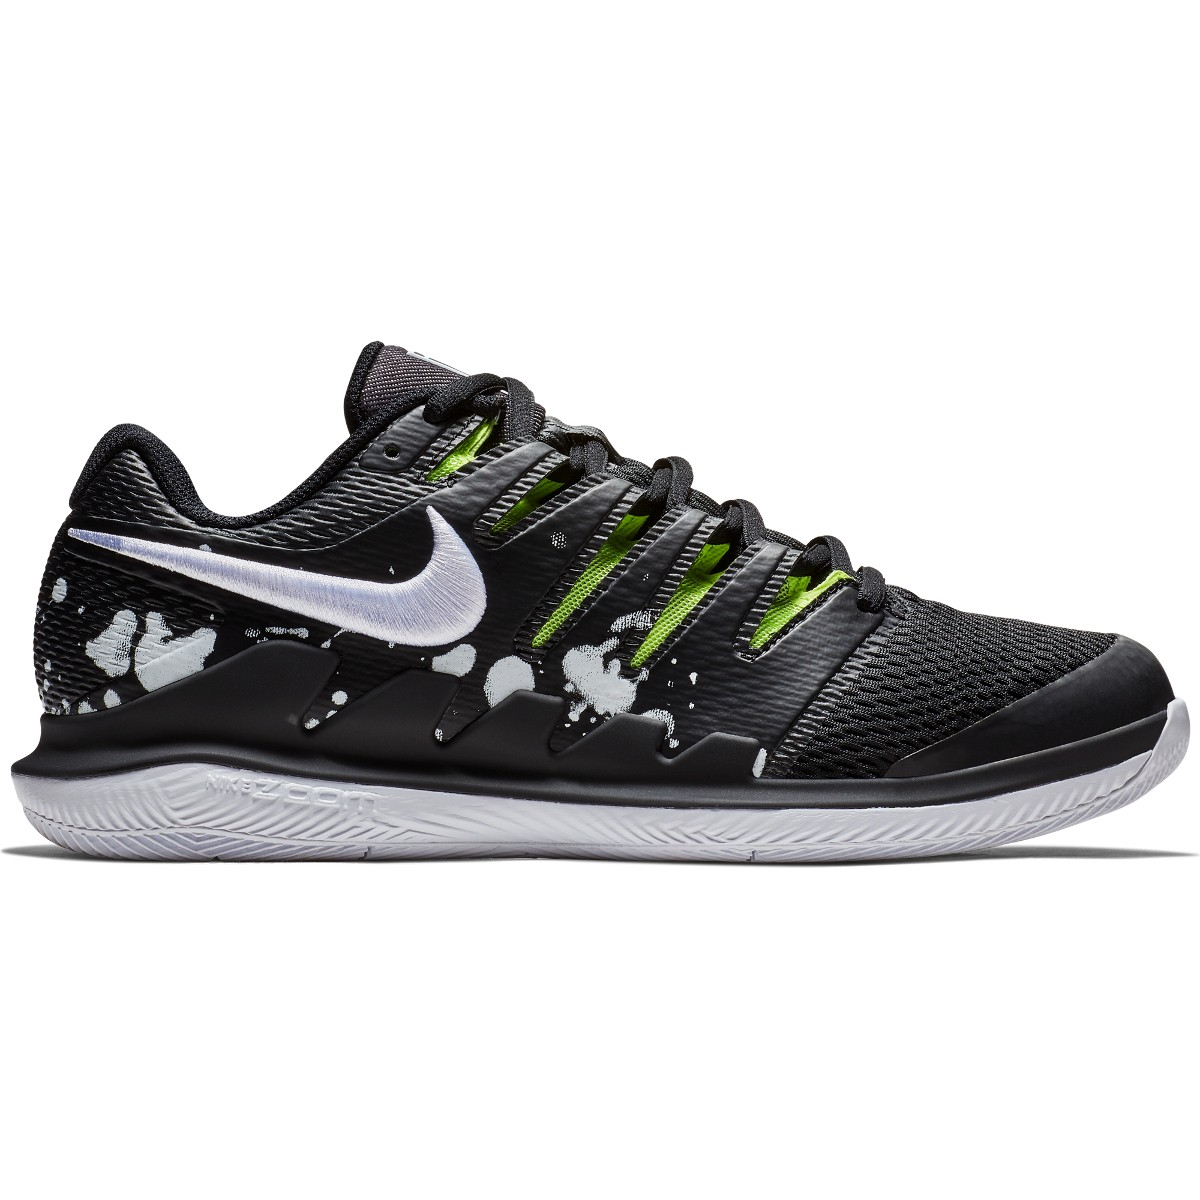 8c7ba65c7e ZAPATILLAS NIKE AIR ZOOM VAPOR 10 PREMIUM TODAS SUPERFICIES +